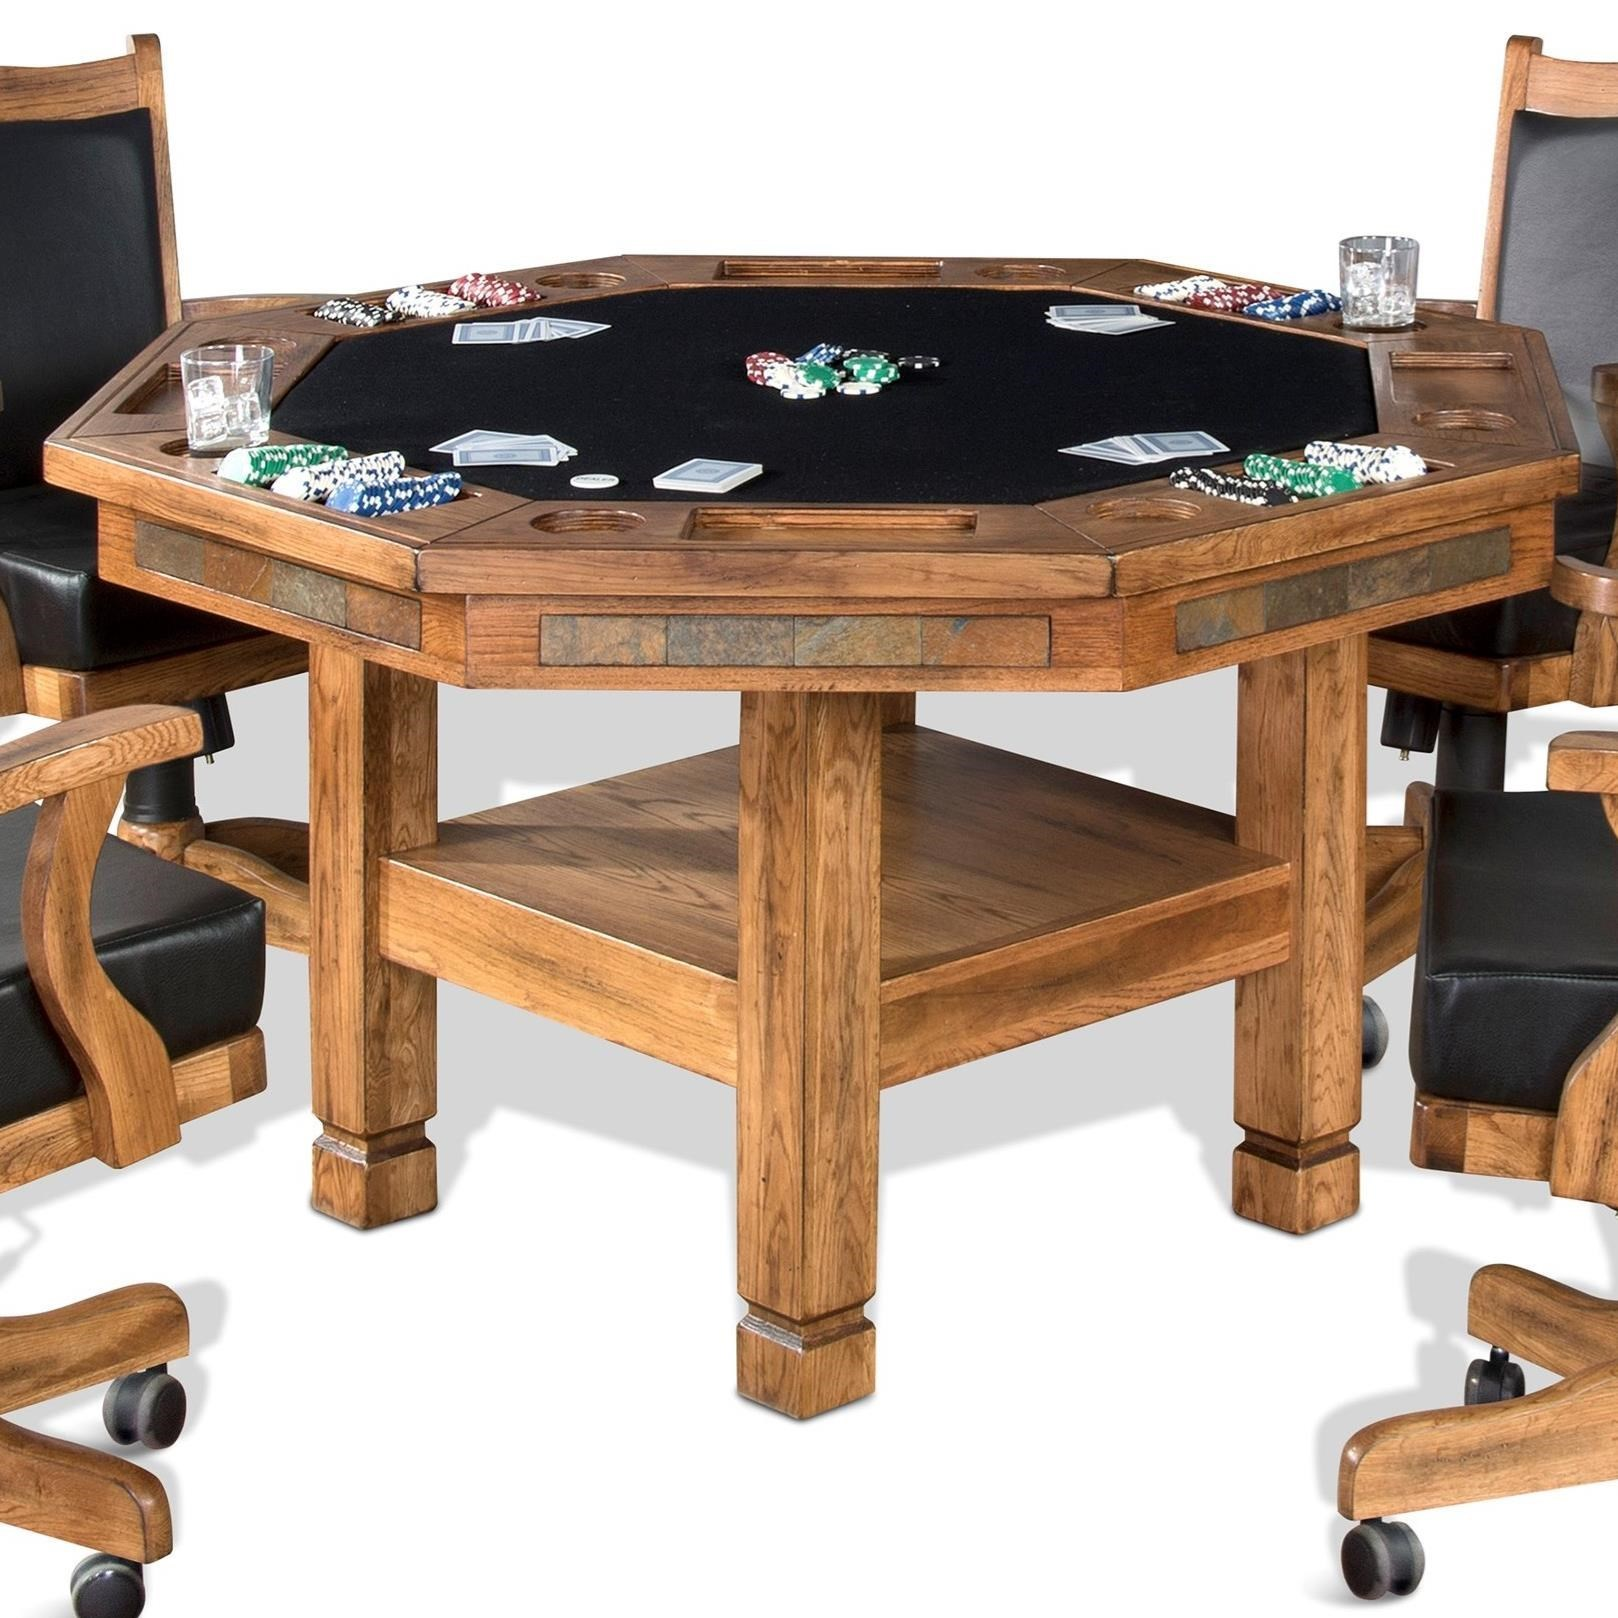 Sunny Designs Sedona Reversible Top Game amp Dining Table  : sedona21005ro b1jpgscalebothampwidth500ampheight500ampfsharpen25ampdown from www.sparkshomestore.com size 500 x 500 jpeg 56kB